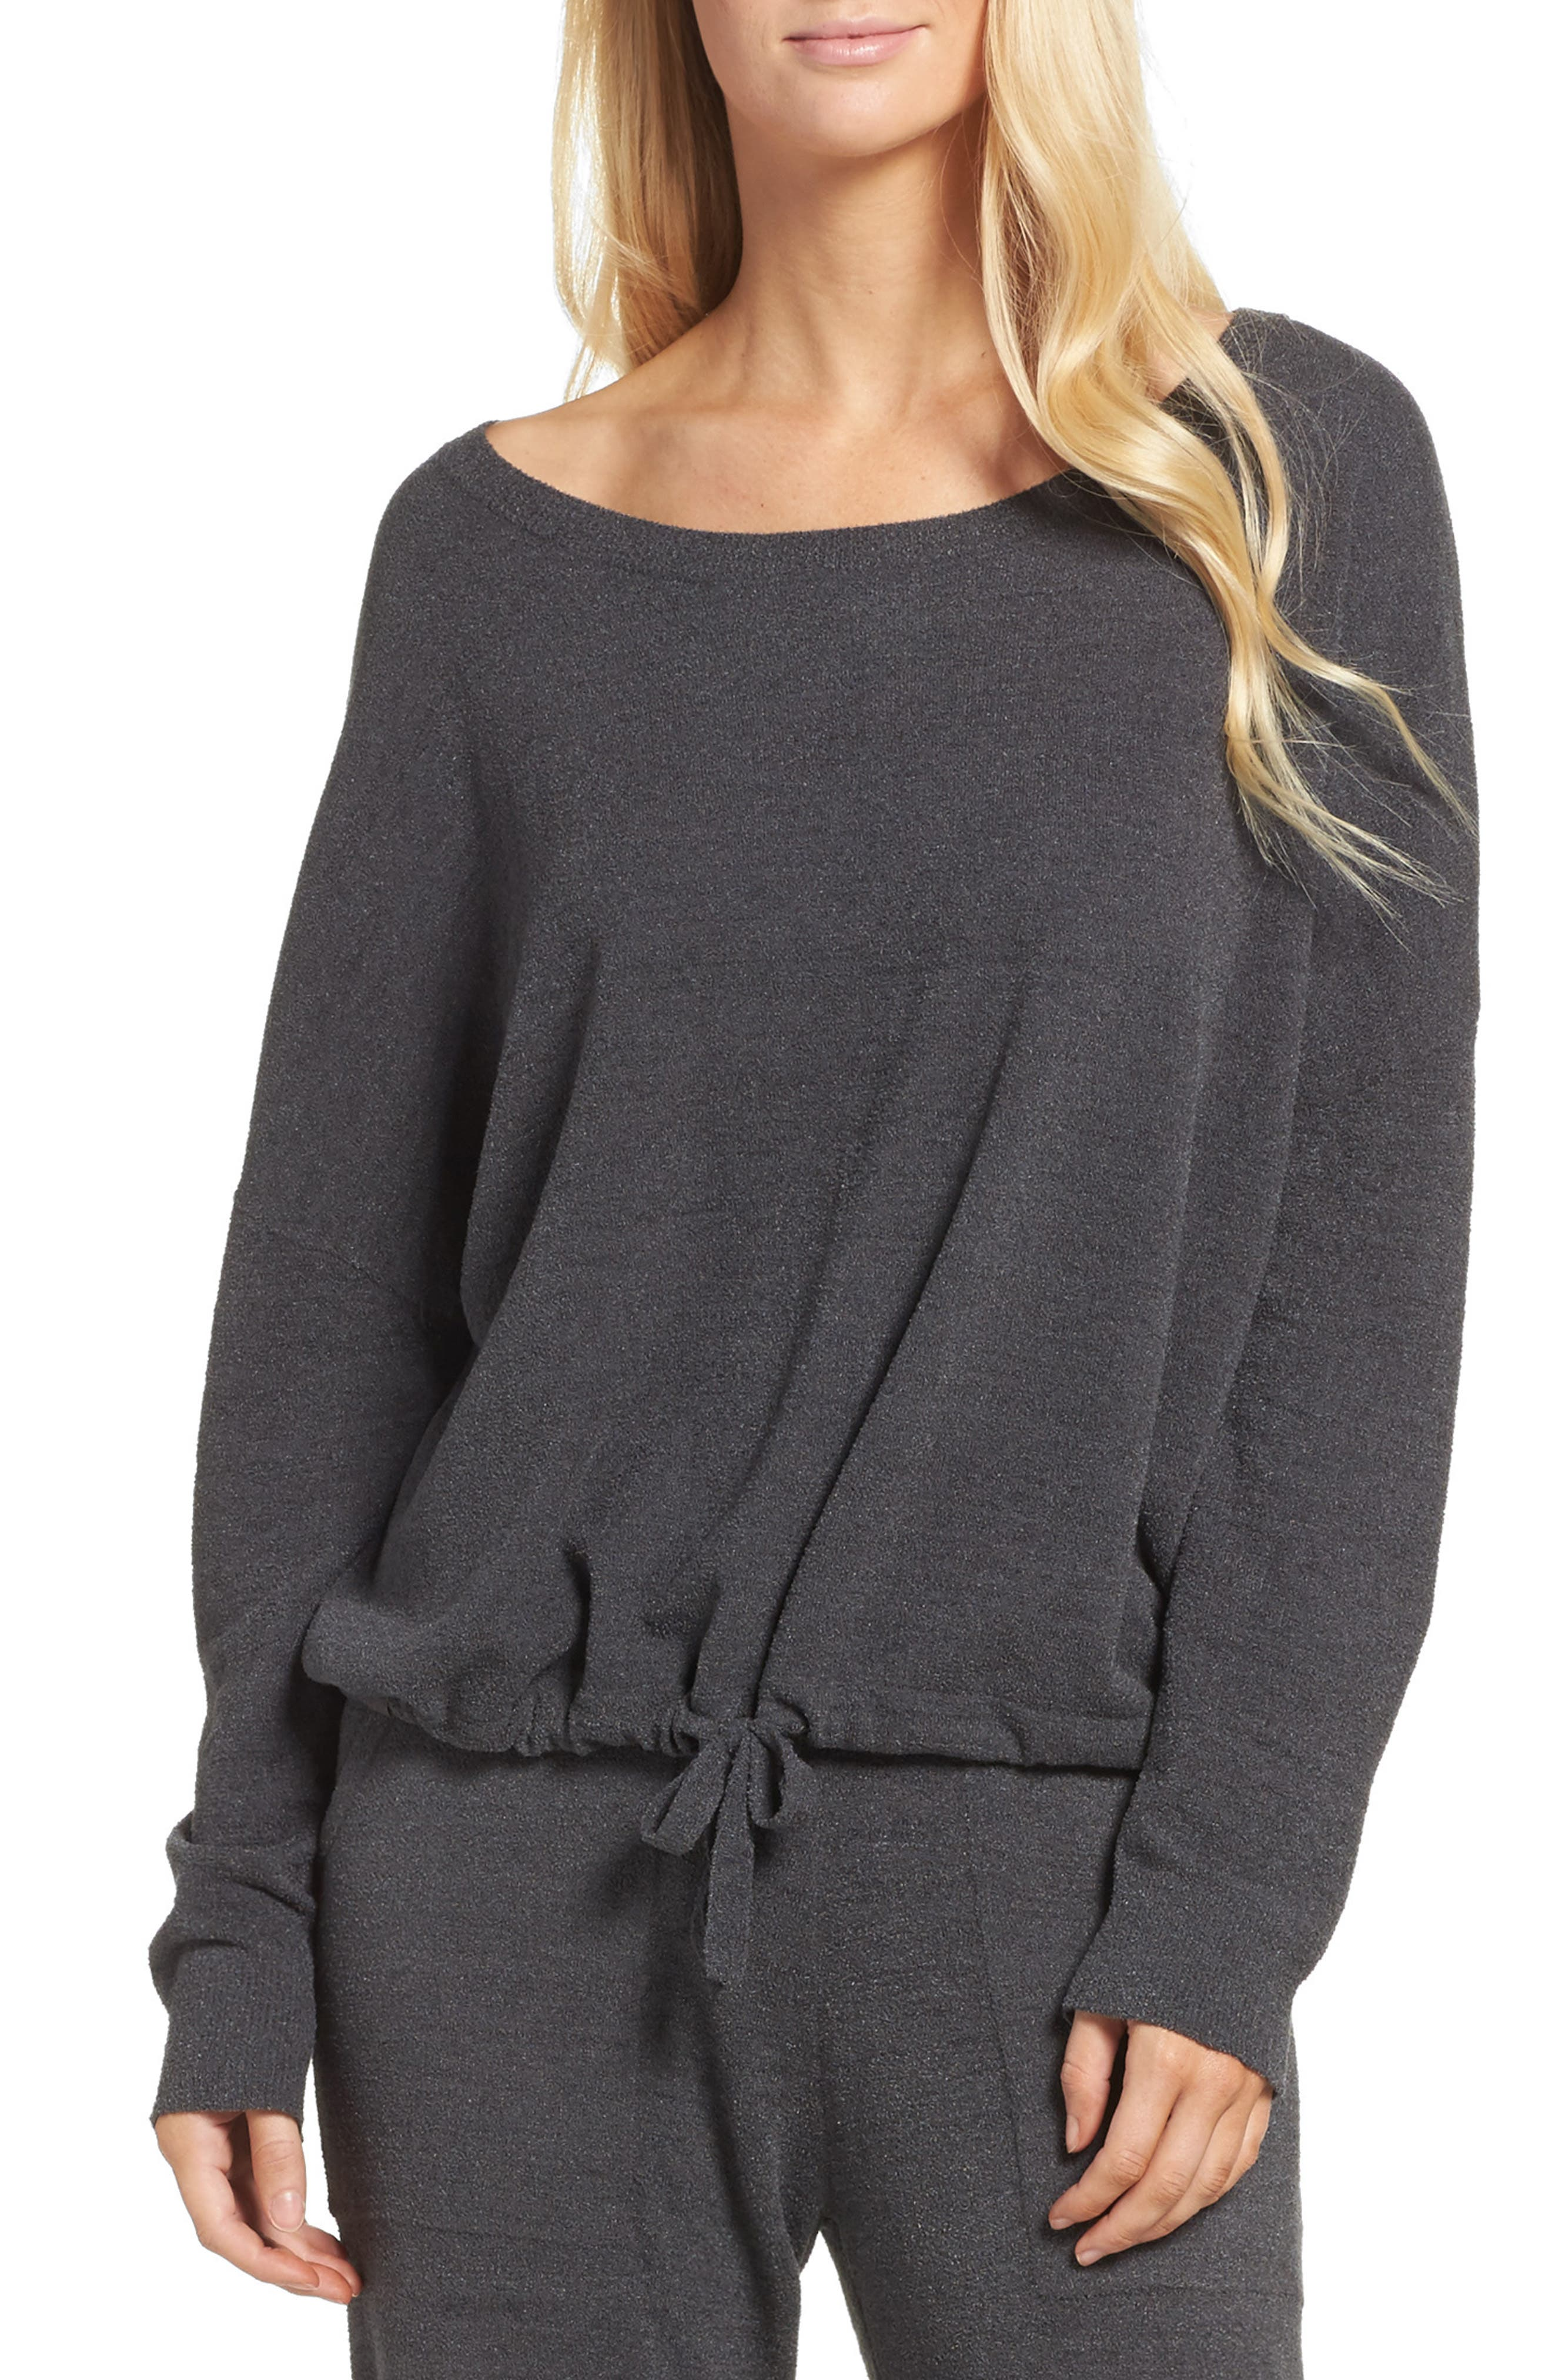 Cozychic Ultra Lite<sup>®</sup> Lounge Pullover,                             Main thumbnail 1, color,                             CARBON